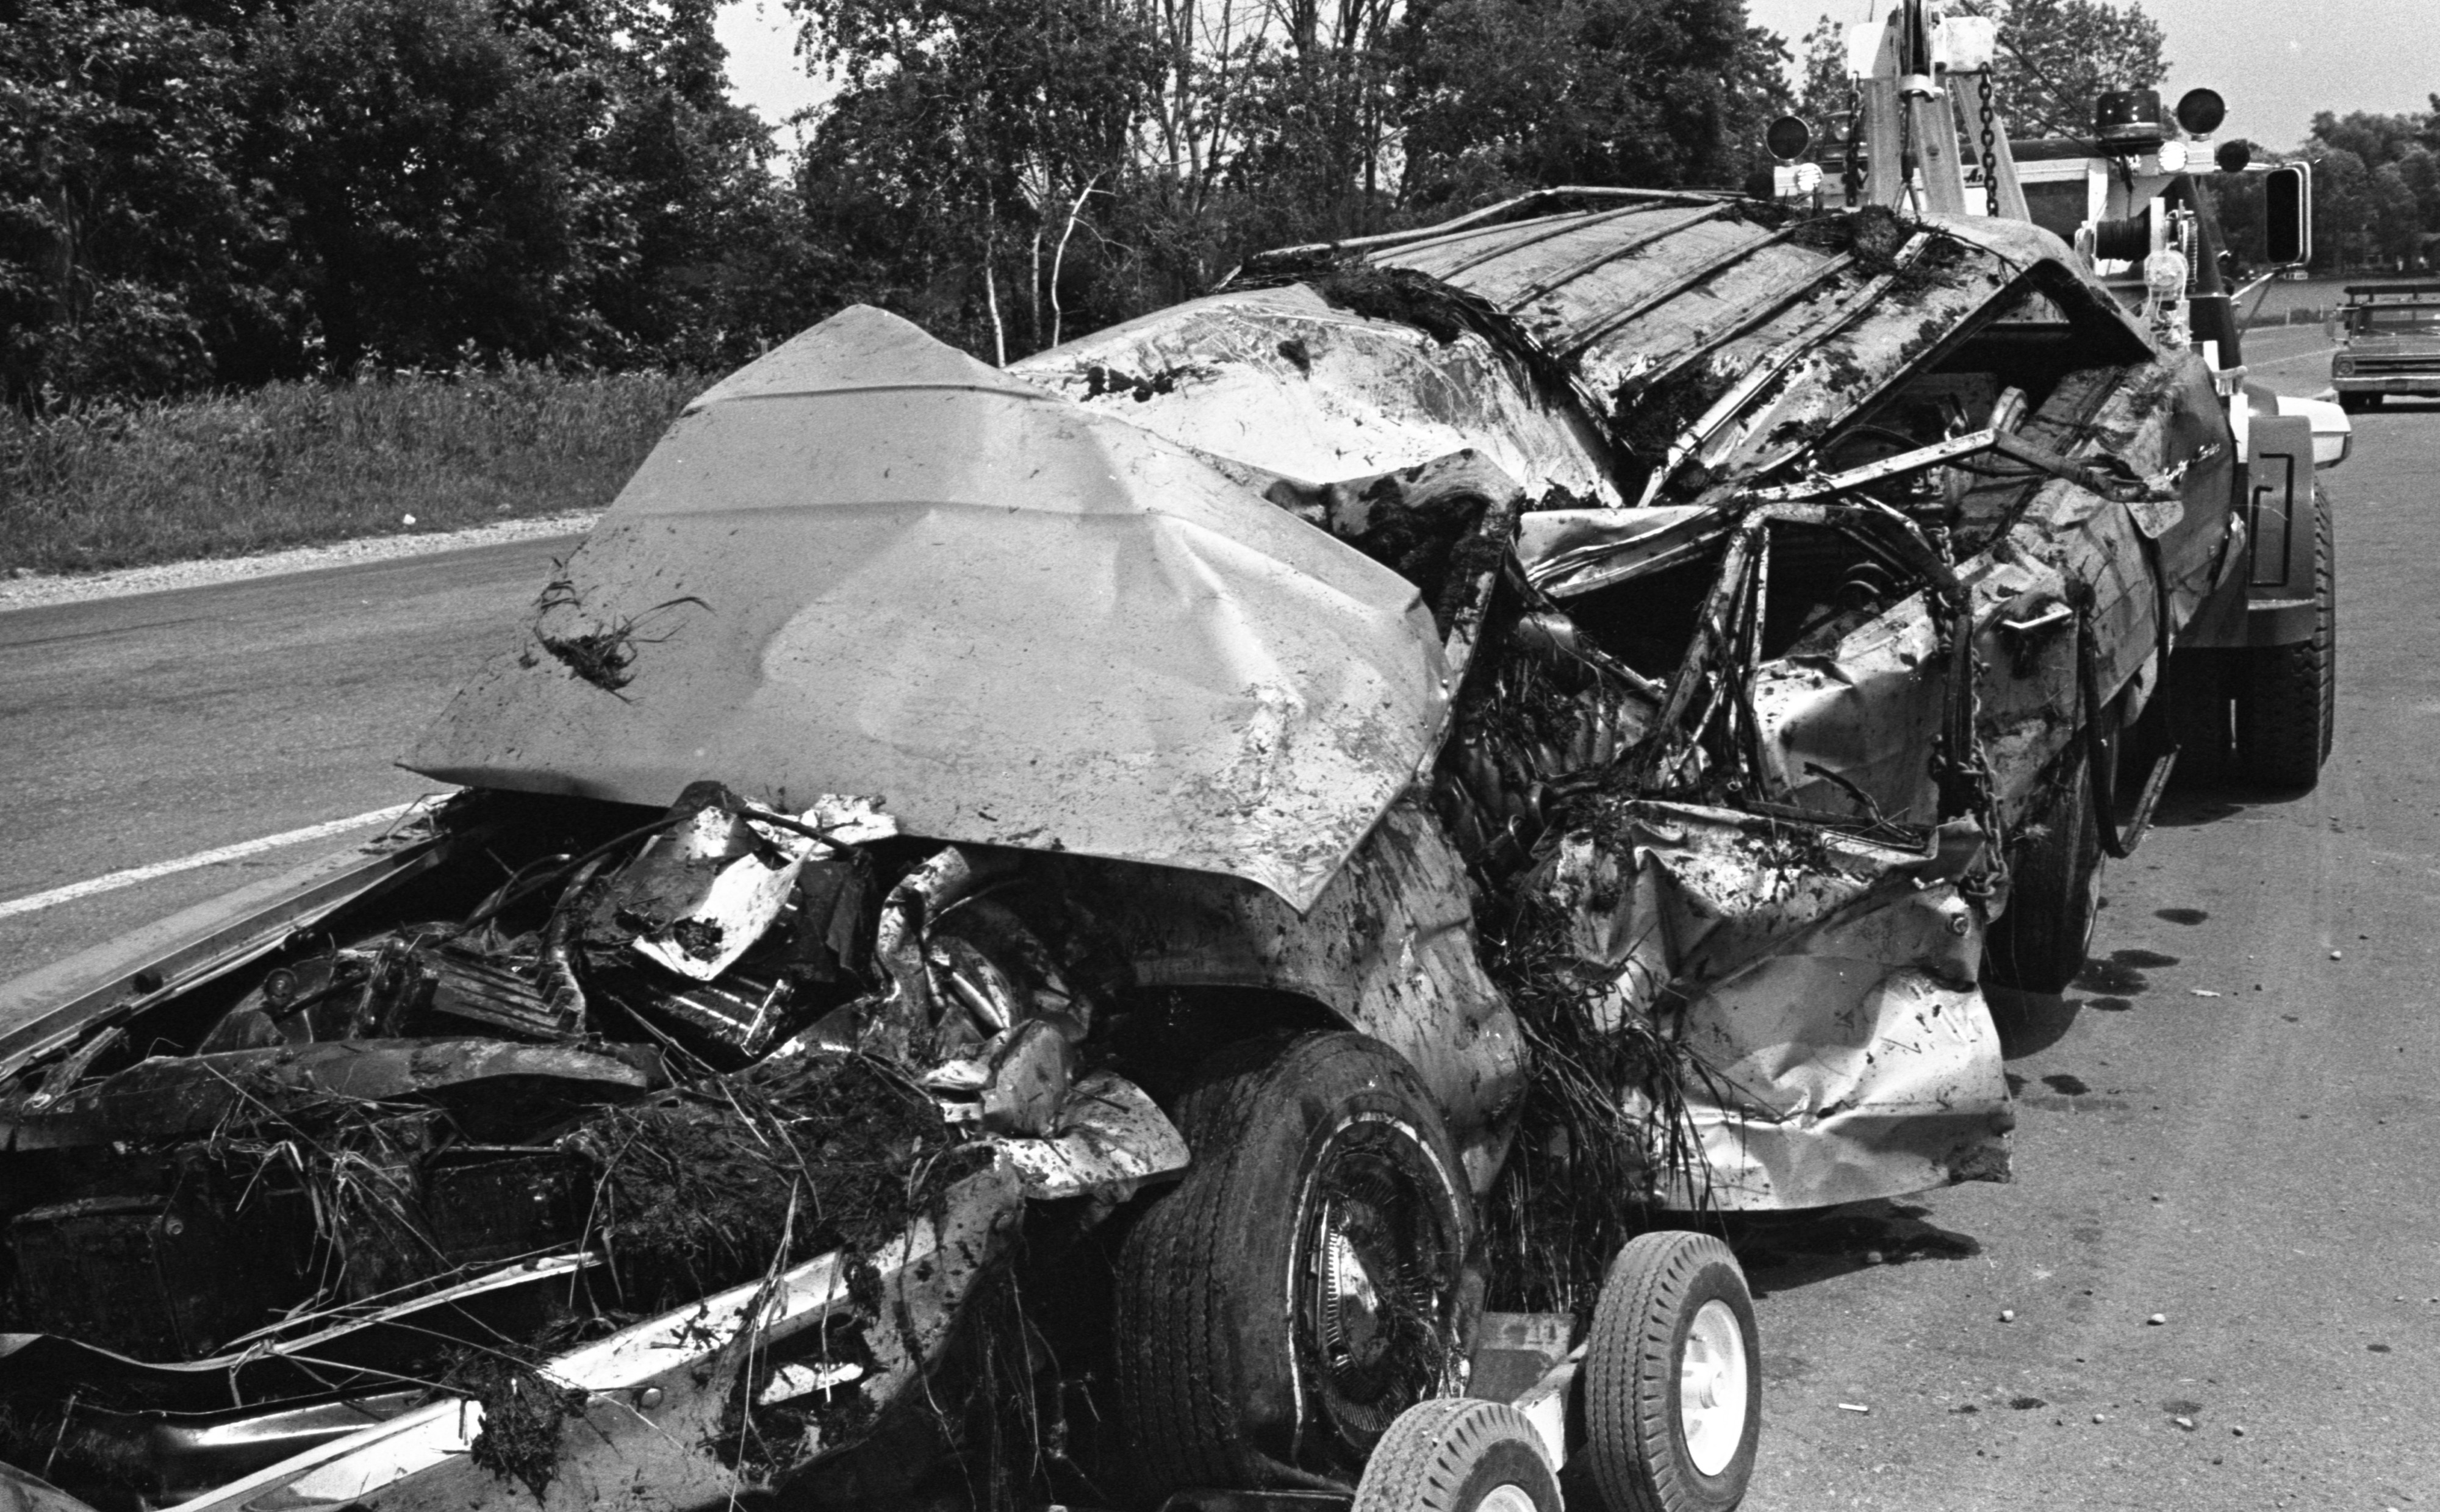 Remains Of The Schill Family Station Wagon After Car-Train Crash, July 1970 image